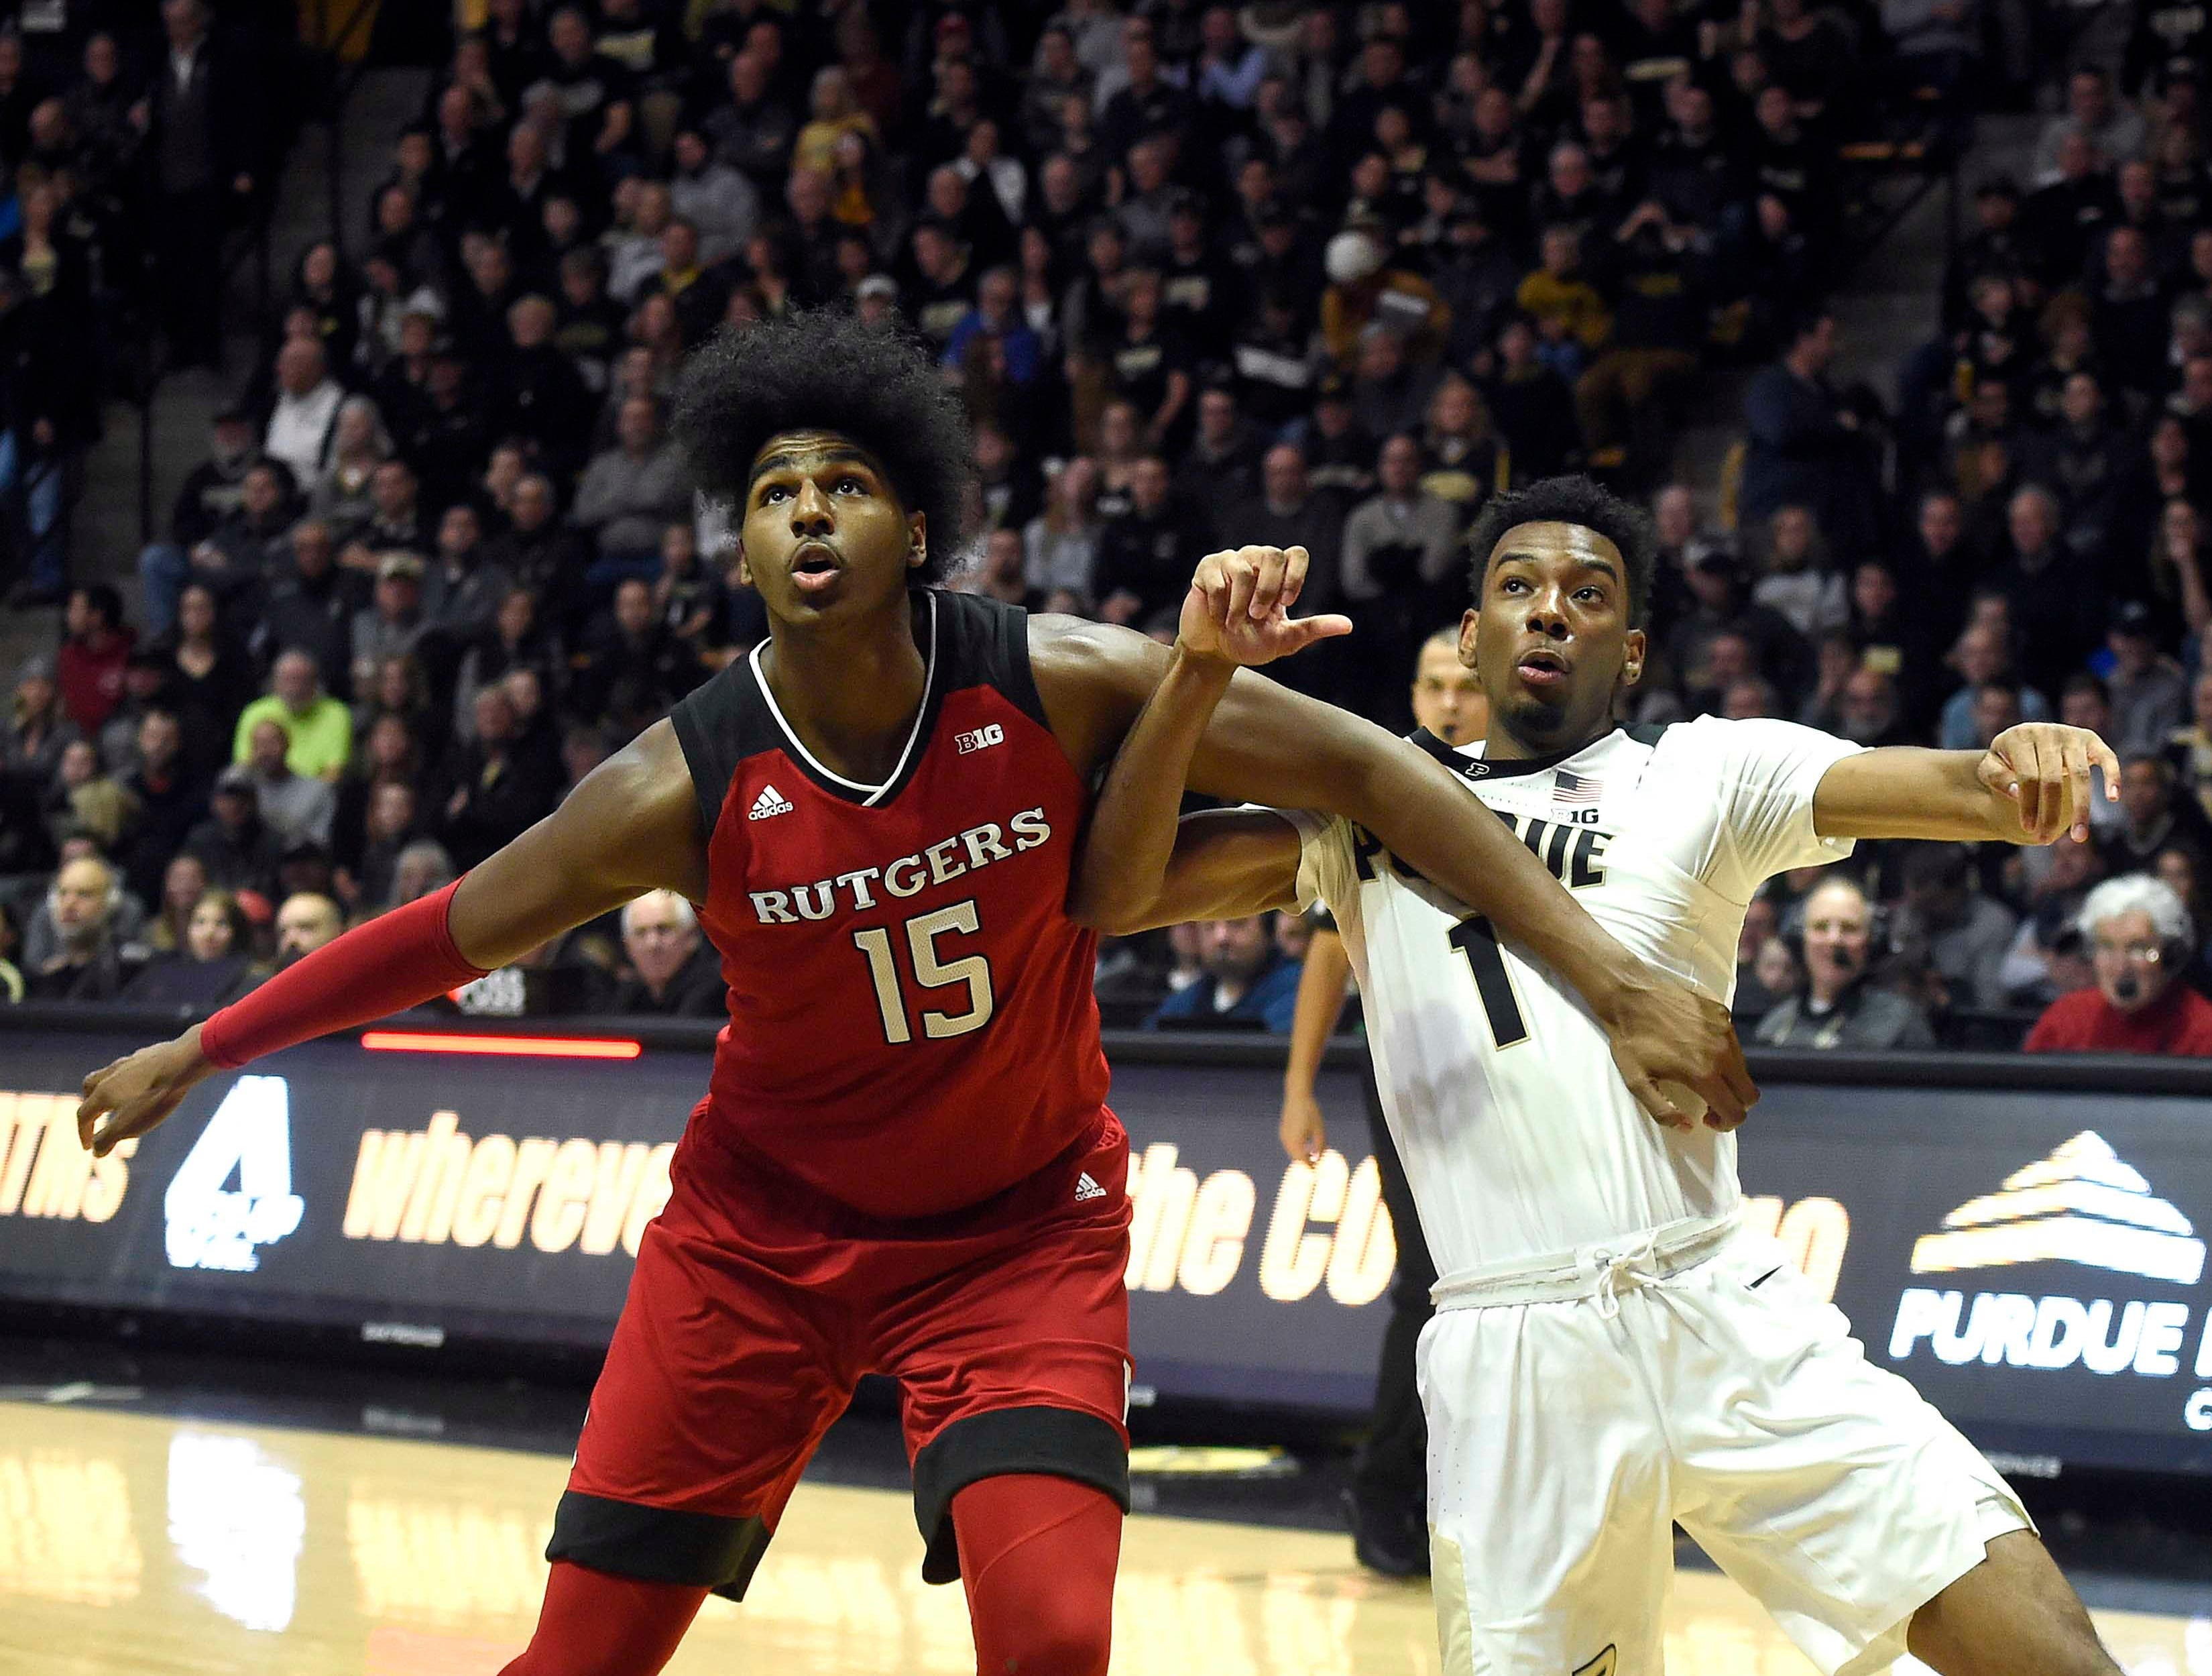 Jan 15, 2019; West Lafayette, IN, USA; Rutgers Scarlet Knights center Myles Johnson (15) and Purdue Boilermakers forward Aaron Wheeler (1) fight for a rebound in the first half at Mackey Arena. Mandatory Credit: Sandra Dukes-USA TODAY Sports